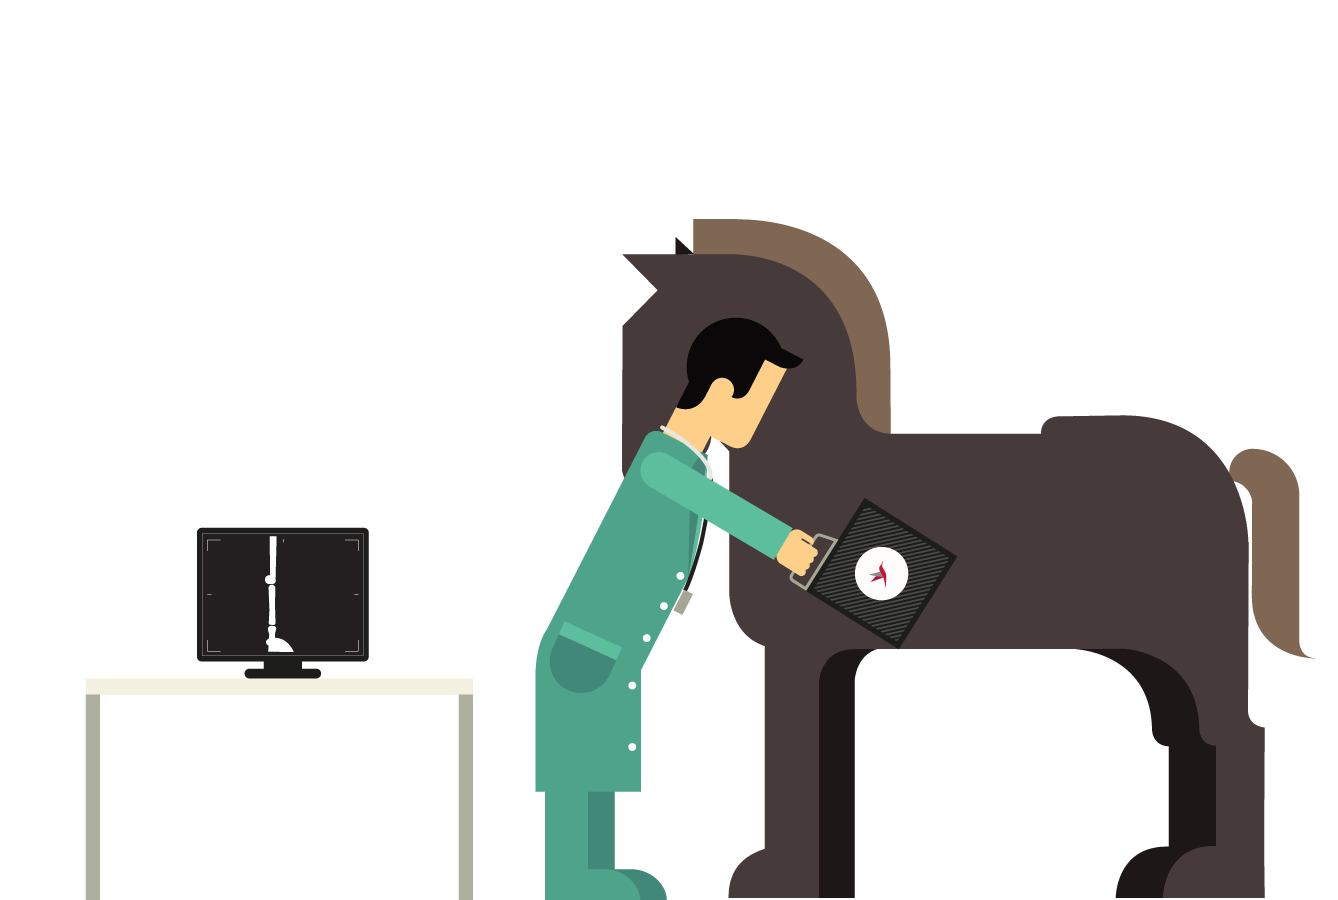 Veterinarian clipart person. Aria features horse simplified